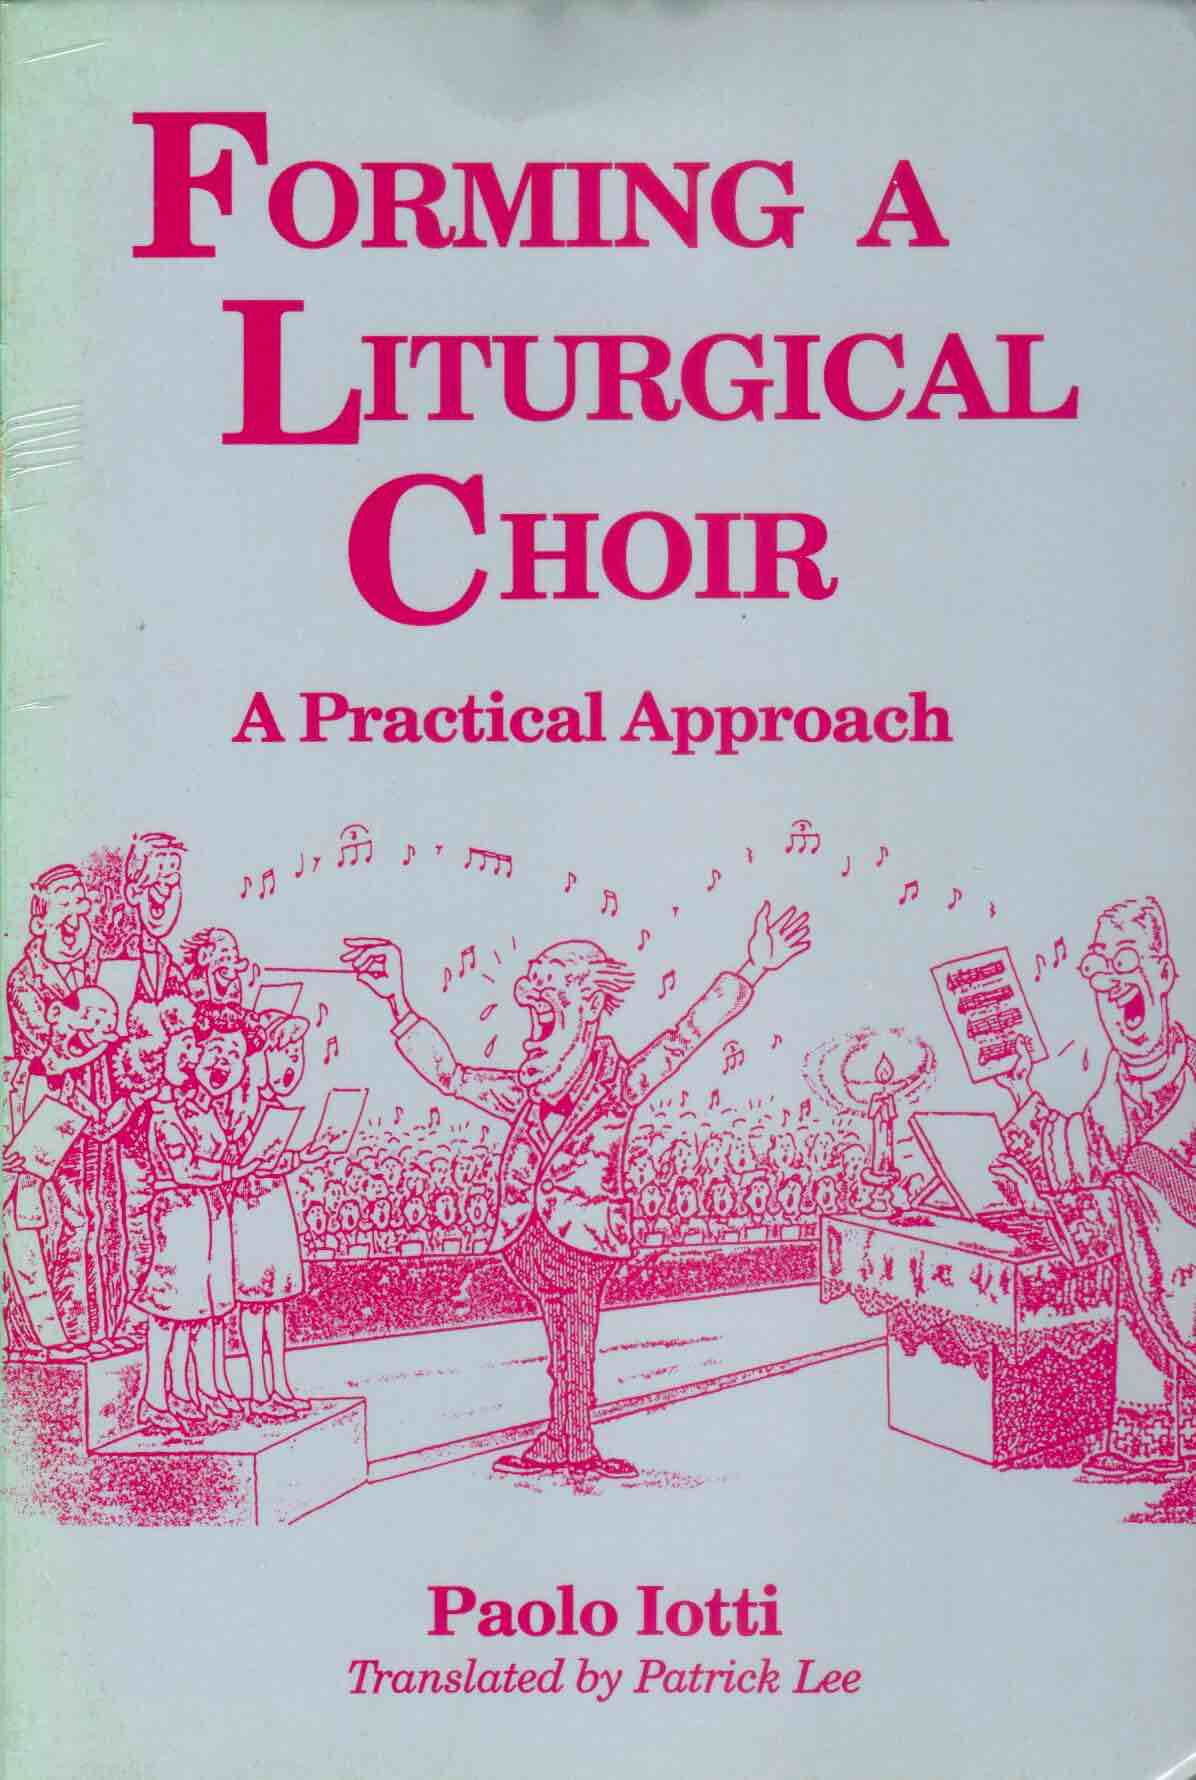 Forming a Liturgical Choir